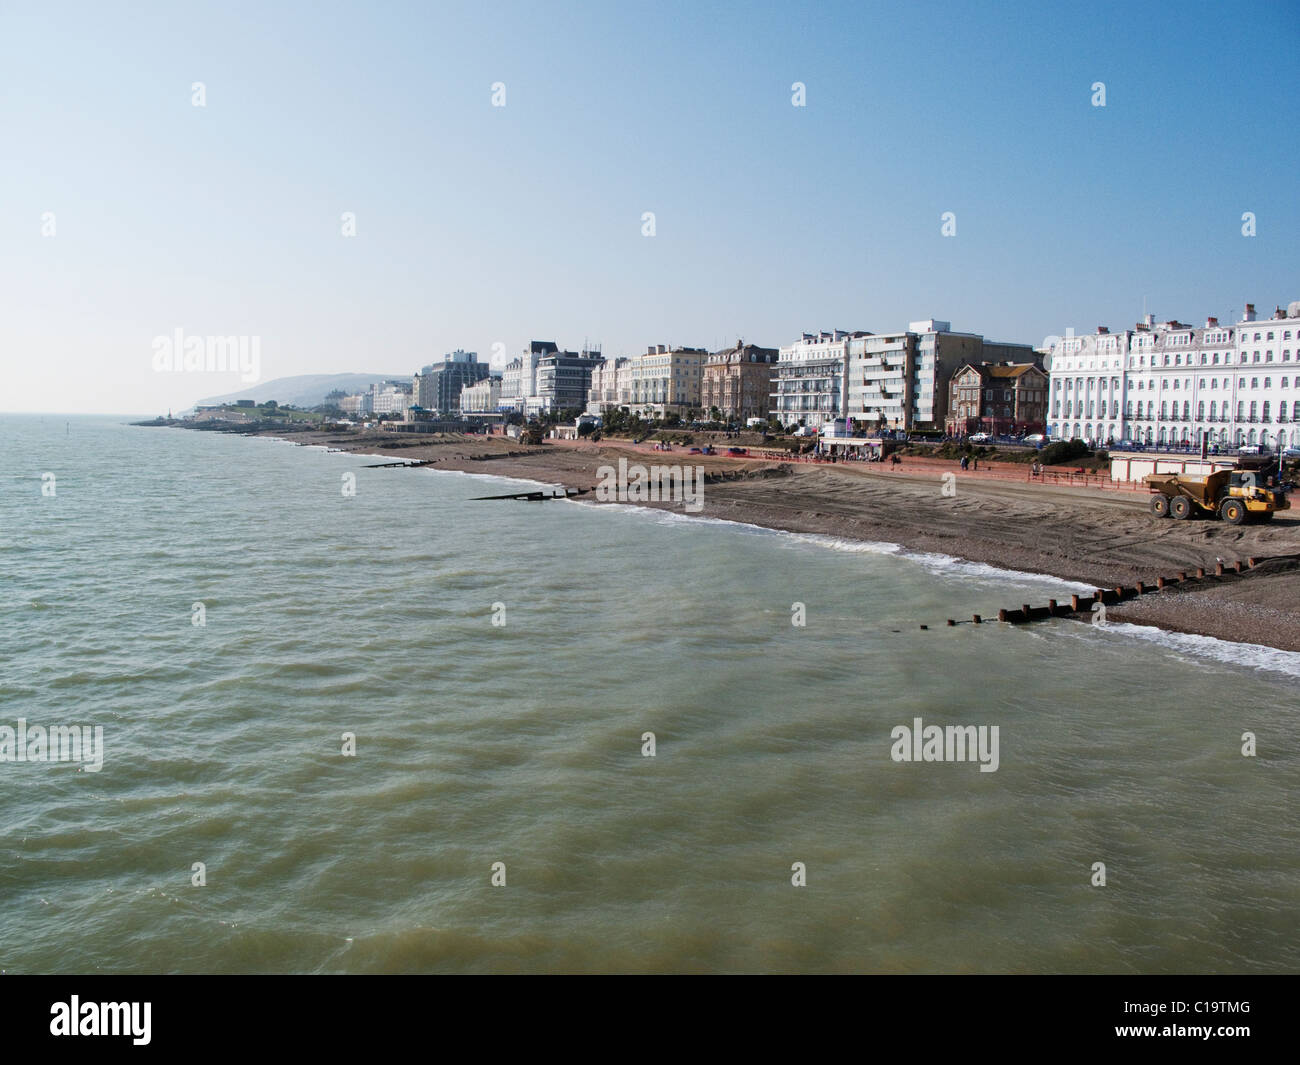 The seafront and beach renewal at Eastbourne in East Sussex in March 2011 - Stock Image